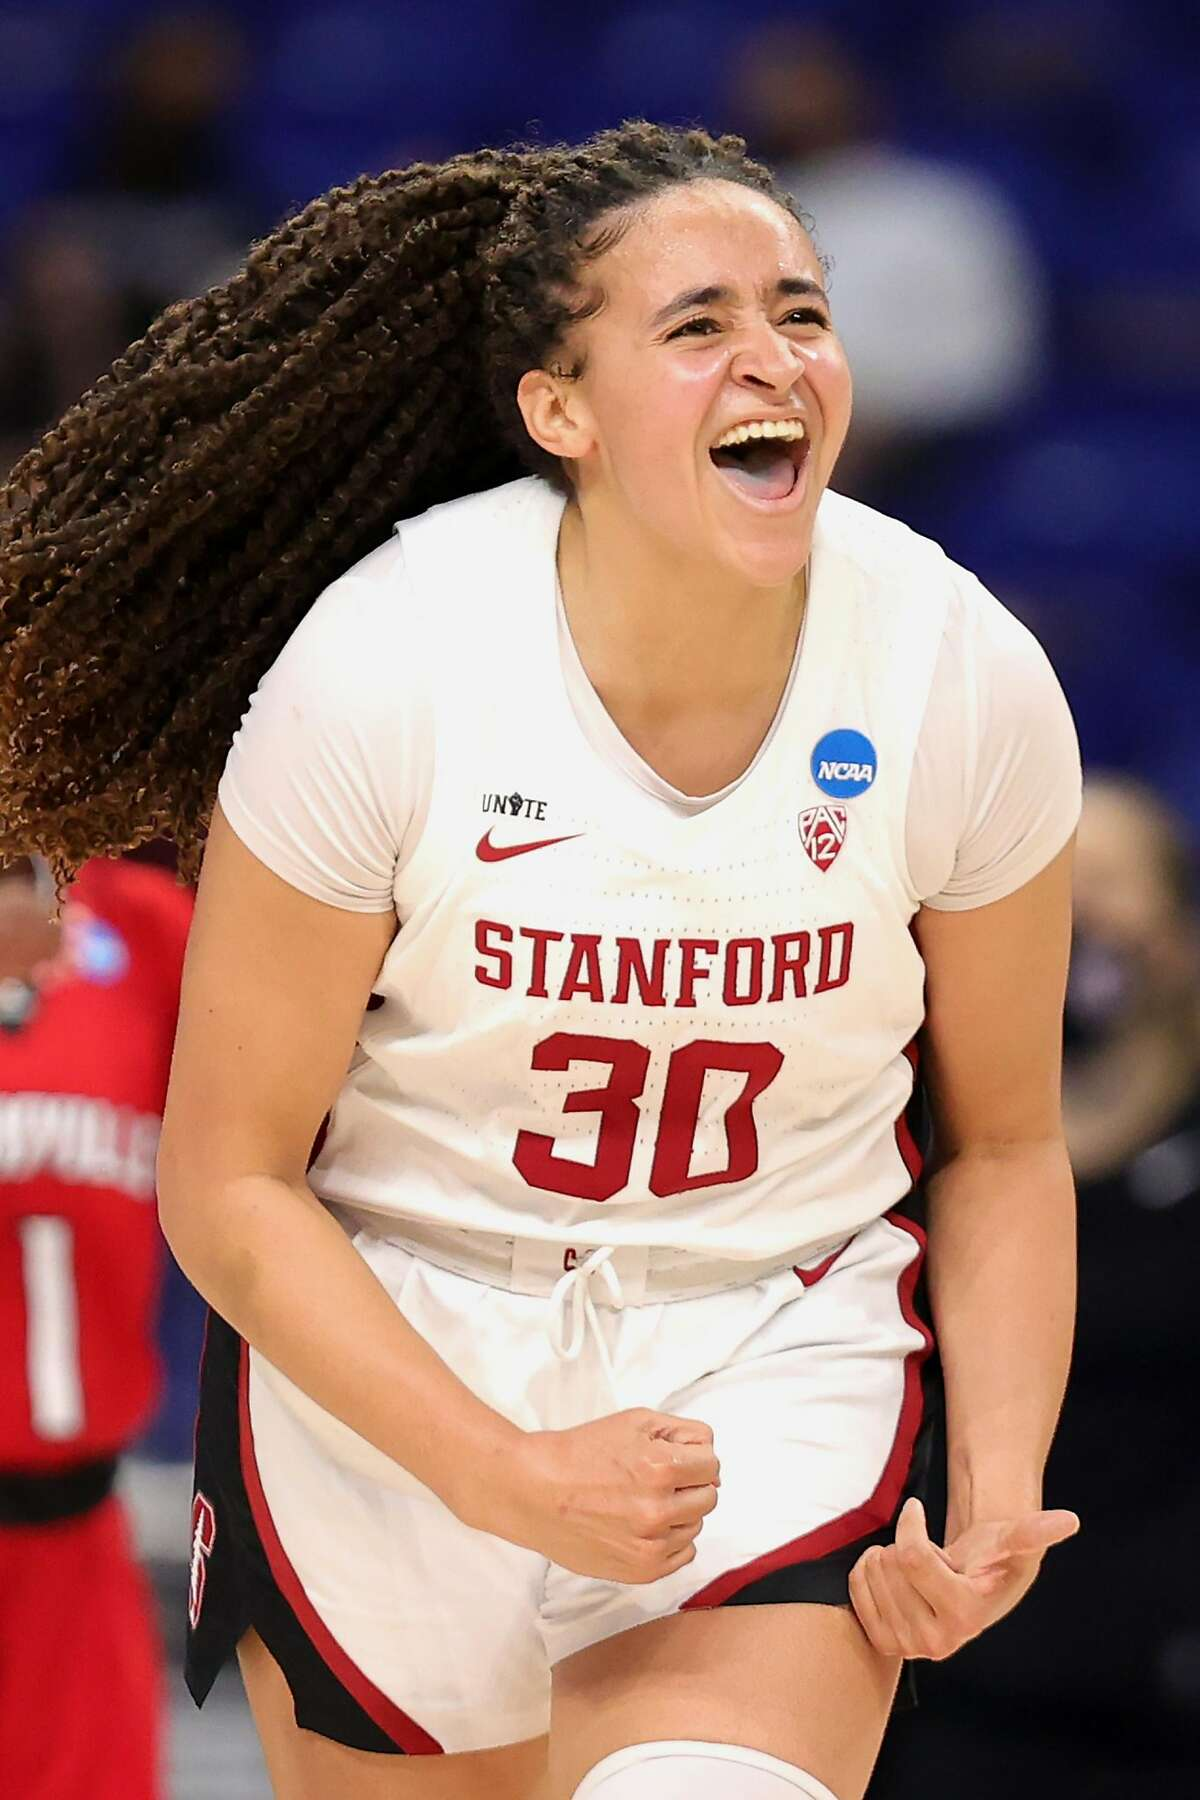 SAN ANTONIO, TEXAS - MARCH 30: Haley Jones #30 of the Stanford Cardinal reacts during the second half against the Louisville Cardinals in the Elite Eight round of the NCAA Women's Basketball Tournament at the Alamodome on March 30, 2021 in San Antonio, Texas. (Photo by Carmen Mandato/Getty Images)